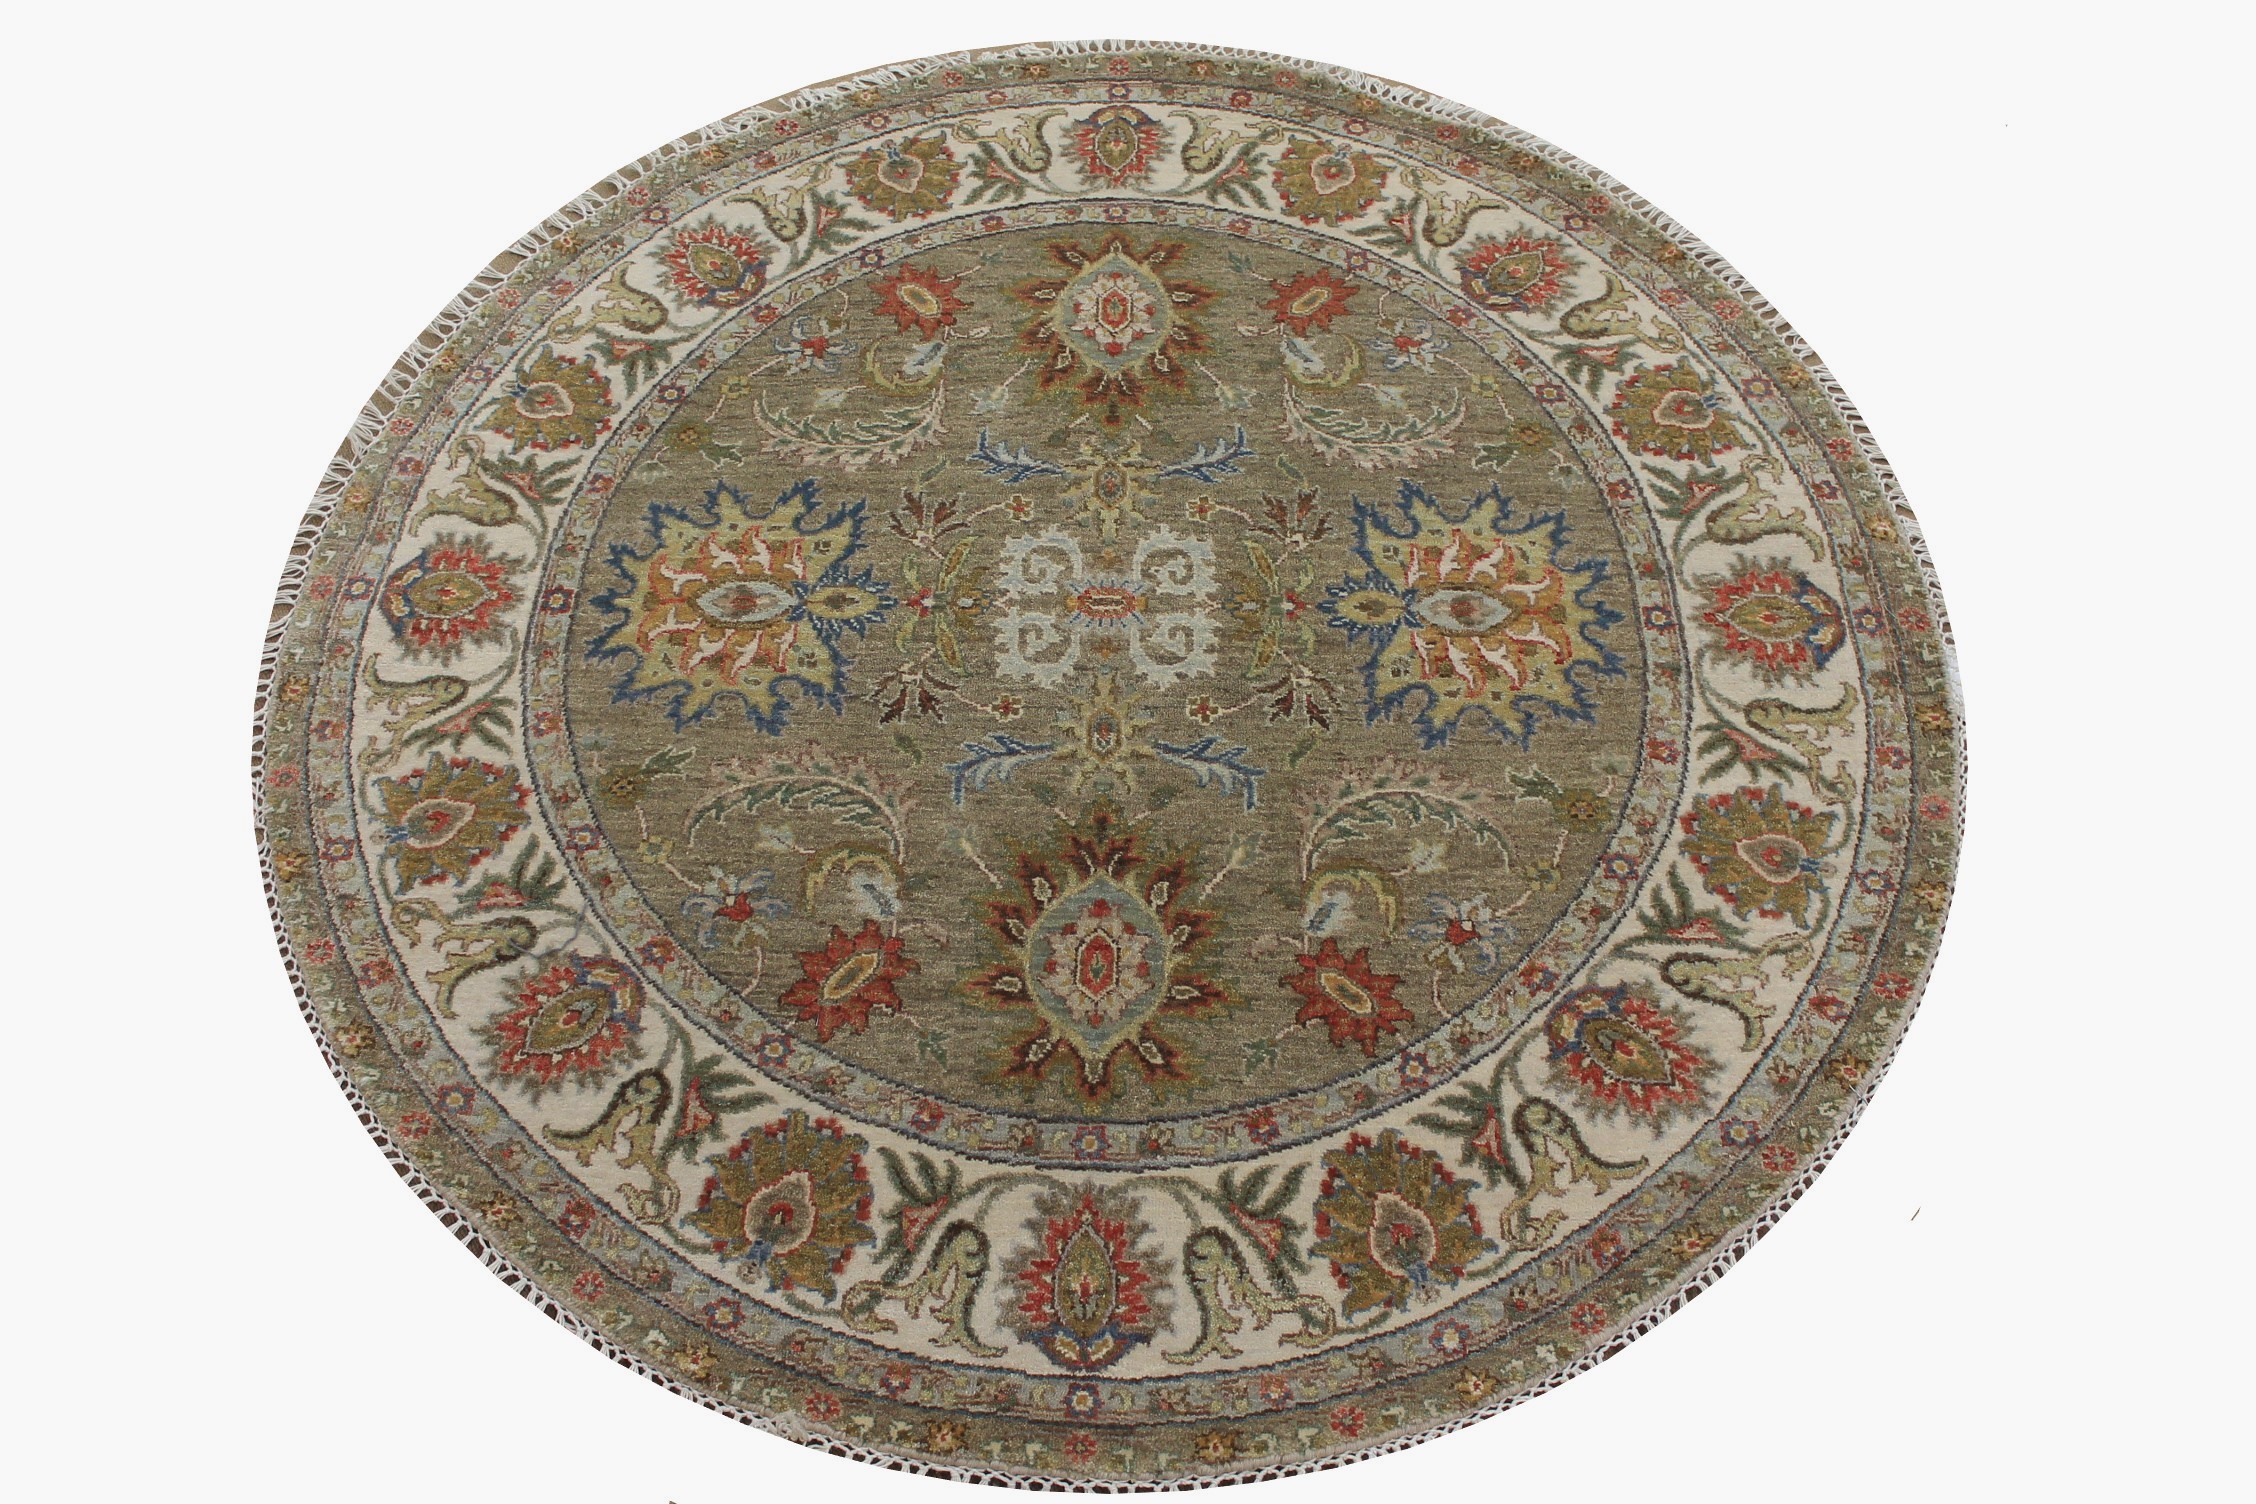 5 ft. Round & Square Traditional Hand Knotted Wool Area Rug - MR025055